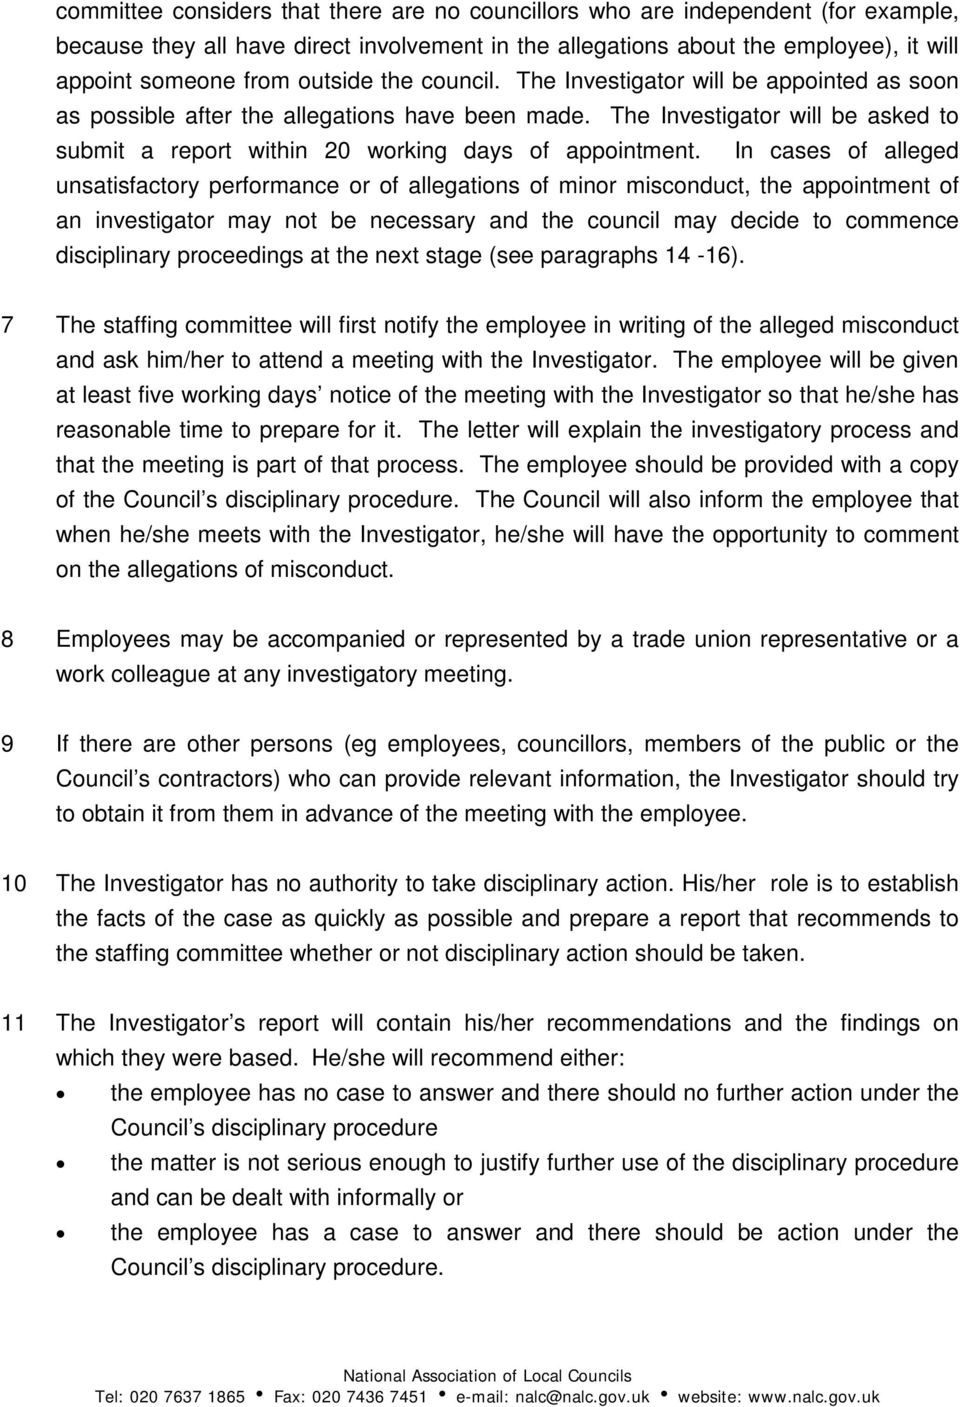 The Investigator will be asked to submit a report within 20 working days of appointment.